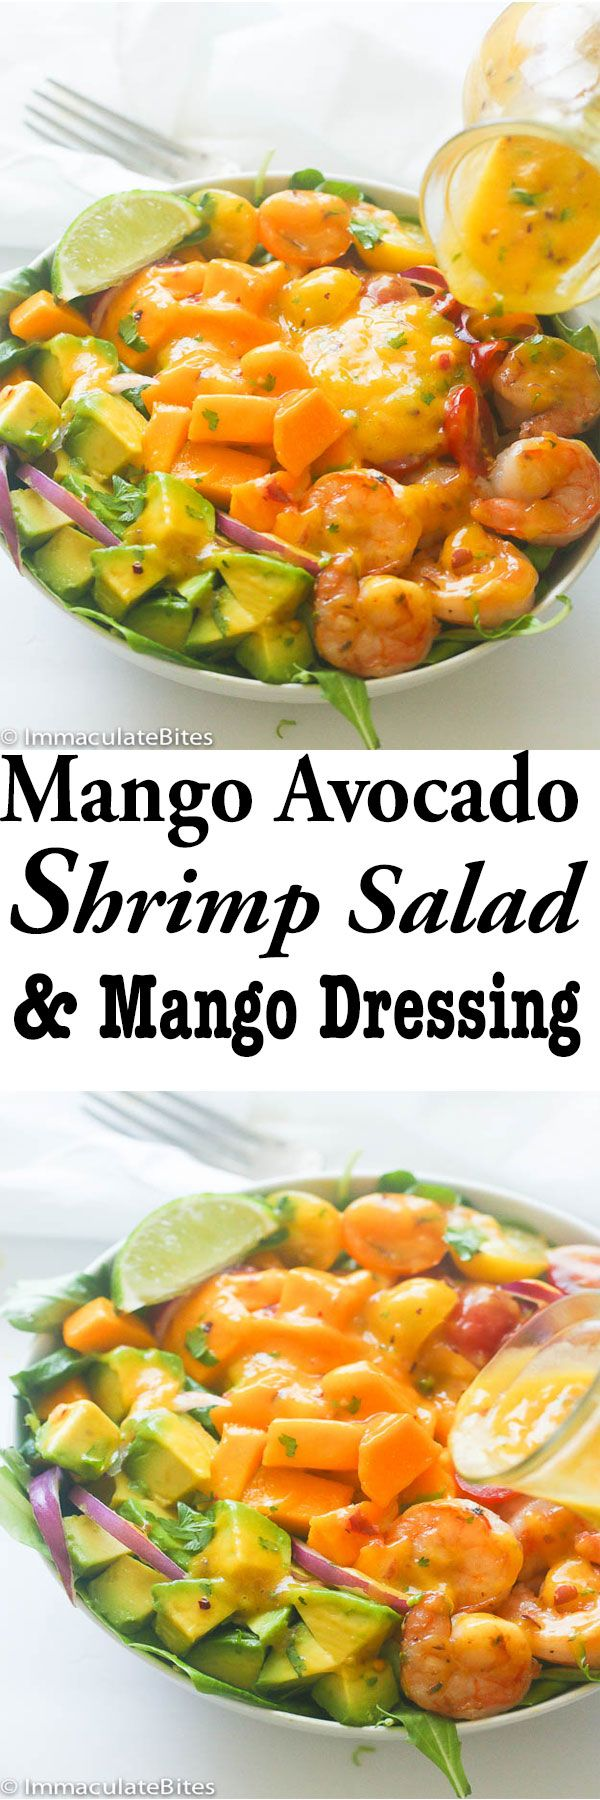 Best 25 Mango Salad Ideas On Pinterest Mango Recipes Mango Salsa Recipes And Mango Salsa For Fish